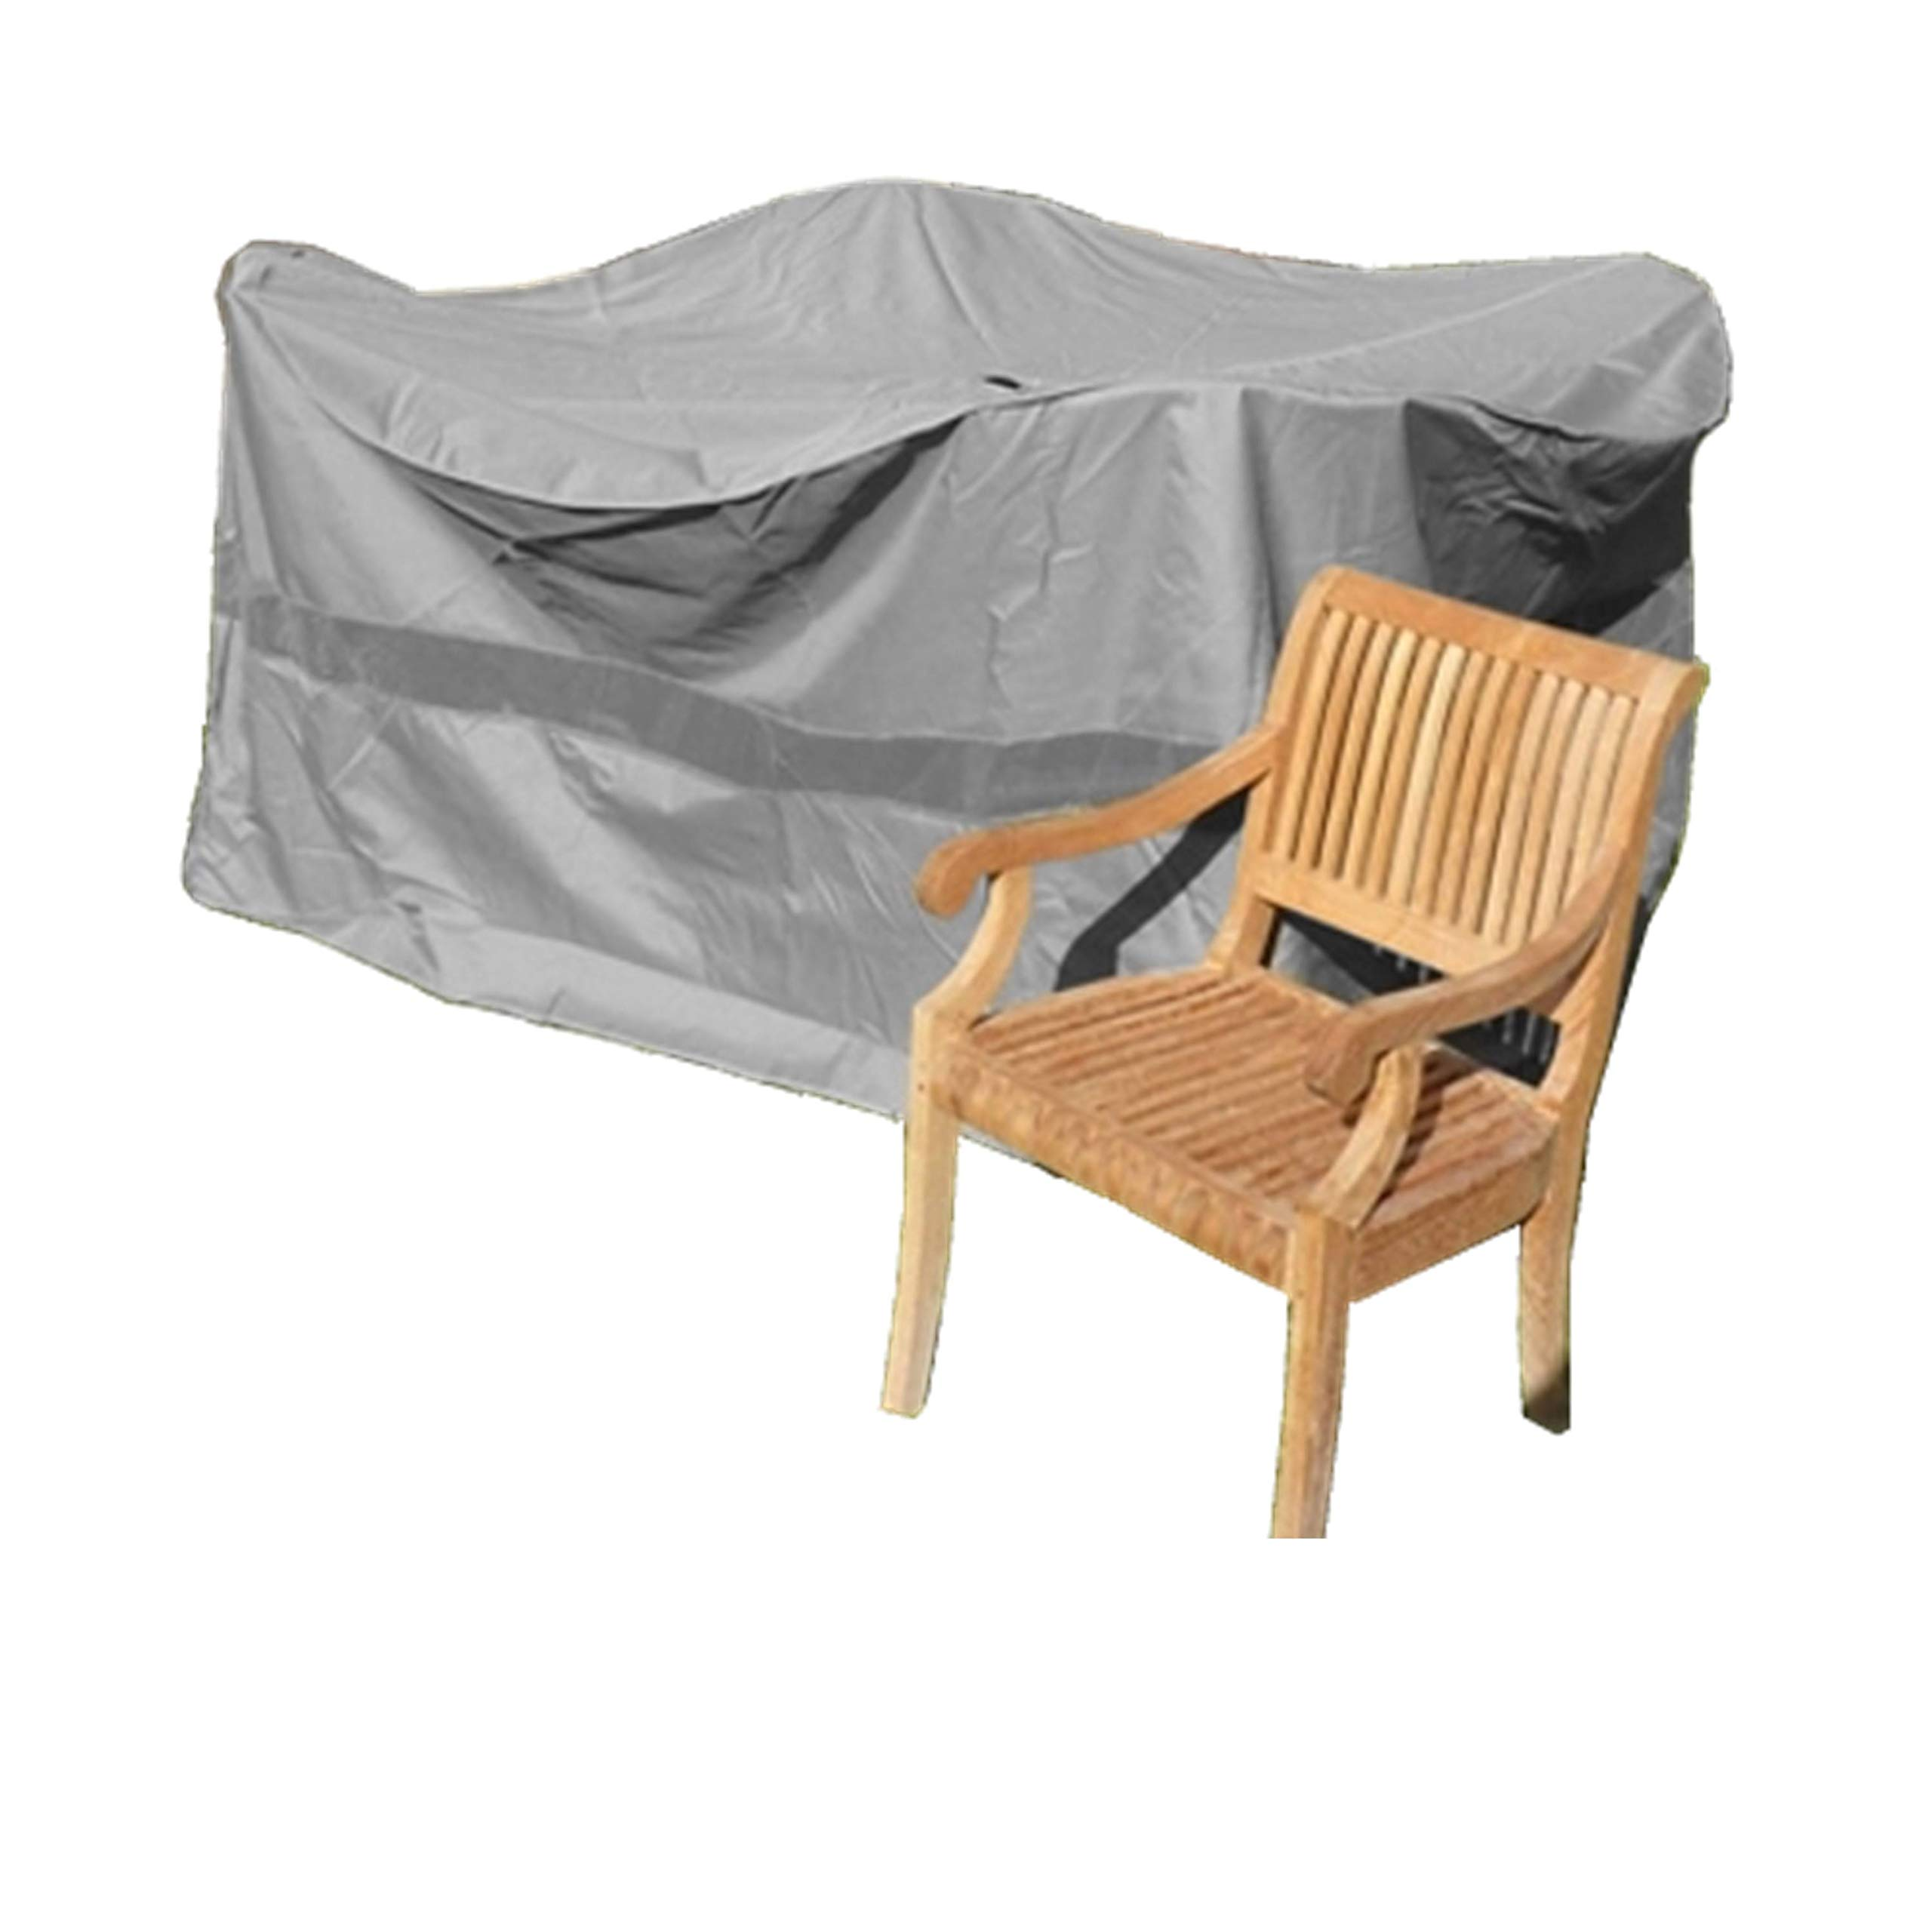 Formosa Covers Premium Tight Weave Bar High Dining Set Cover 98'' Dia. x 41'' H, Fully Covered top NO Umbrella Center Hole in Grey by Formosa Covers